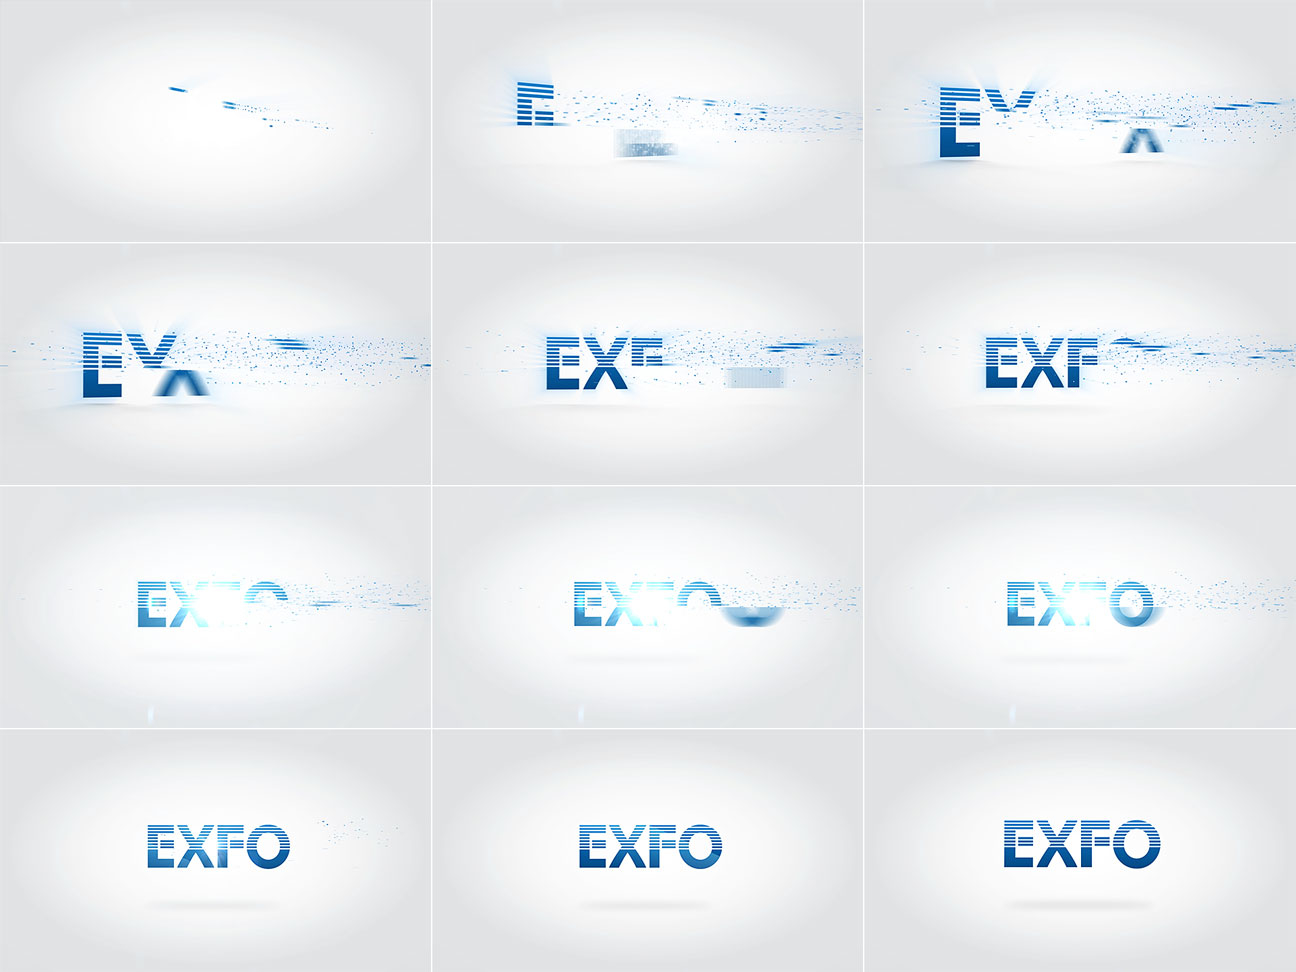 exfo_storyboard